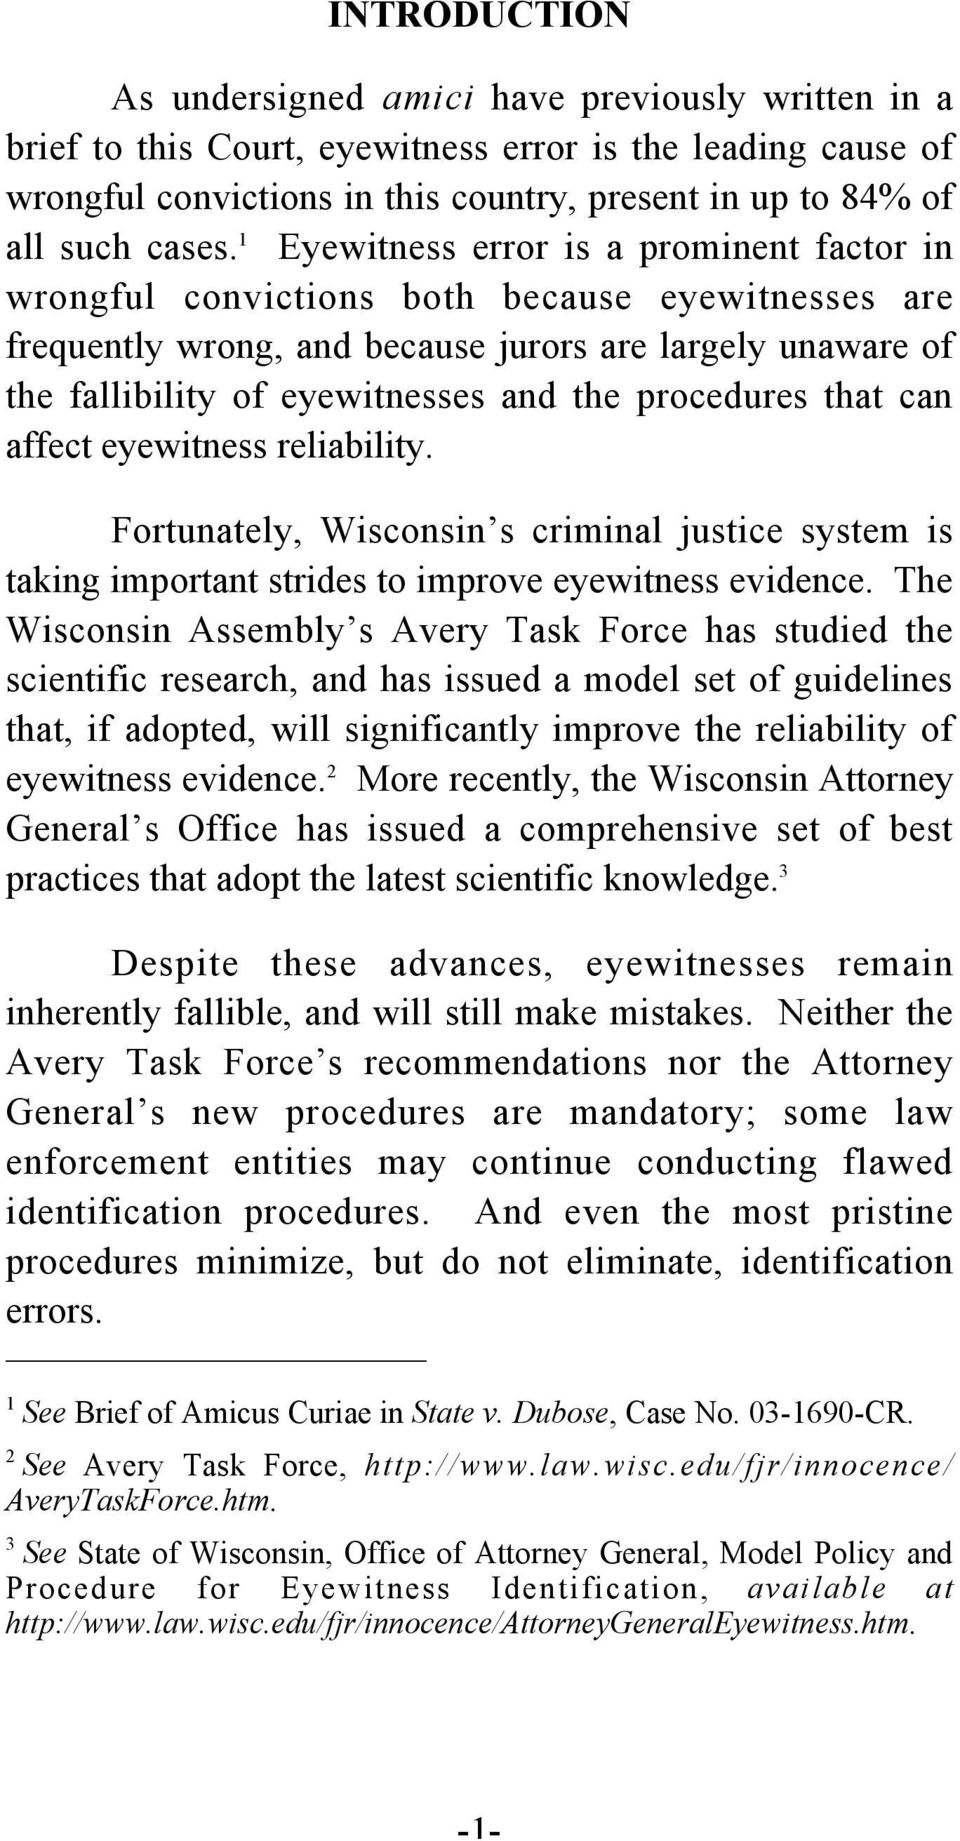 1 Eyewitness error is a prominent factor in wrongful convictions both because eyewitnesses are frequently wrong, and because jurors are largely unaware of the fallibility of eyewitnesses and the